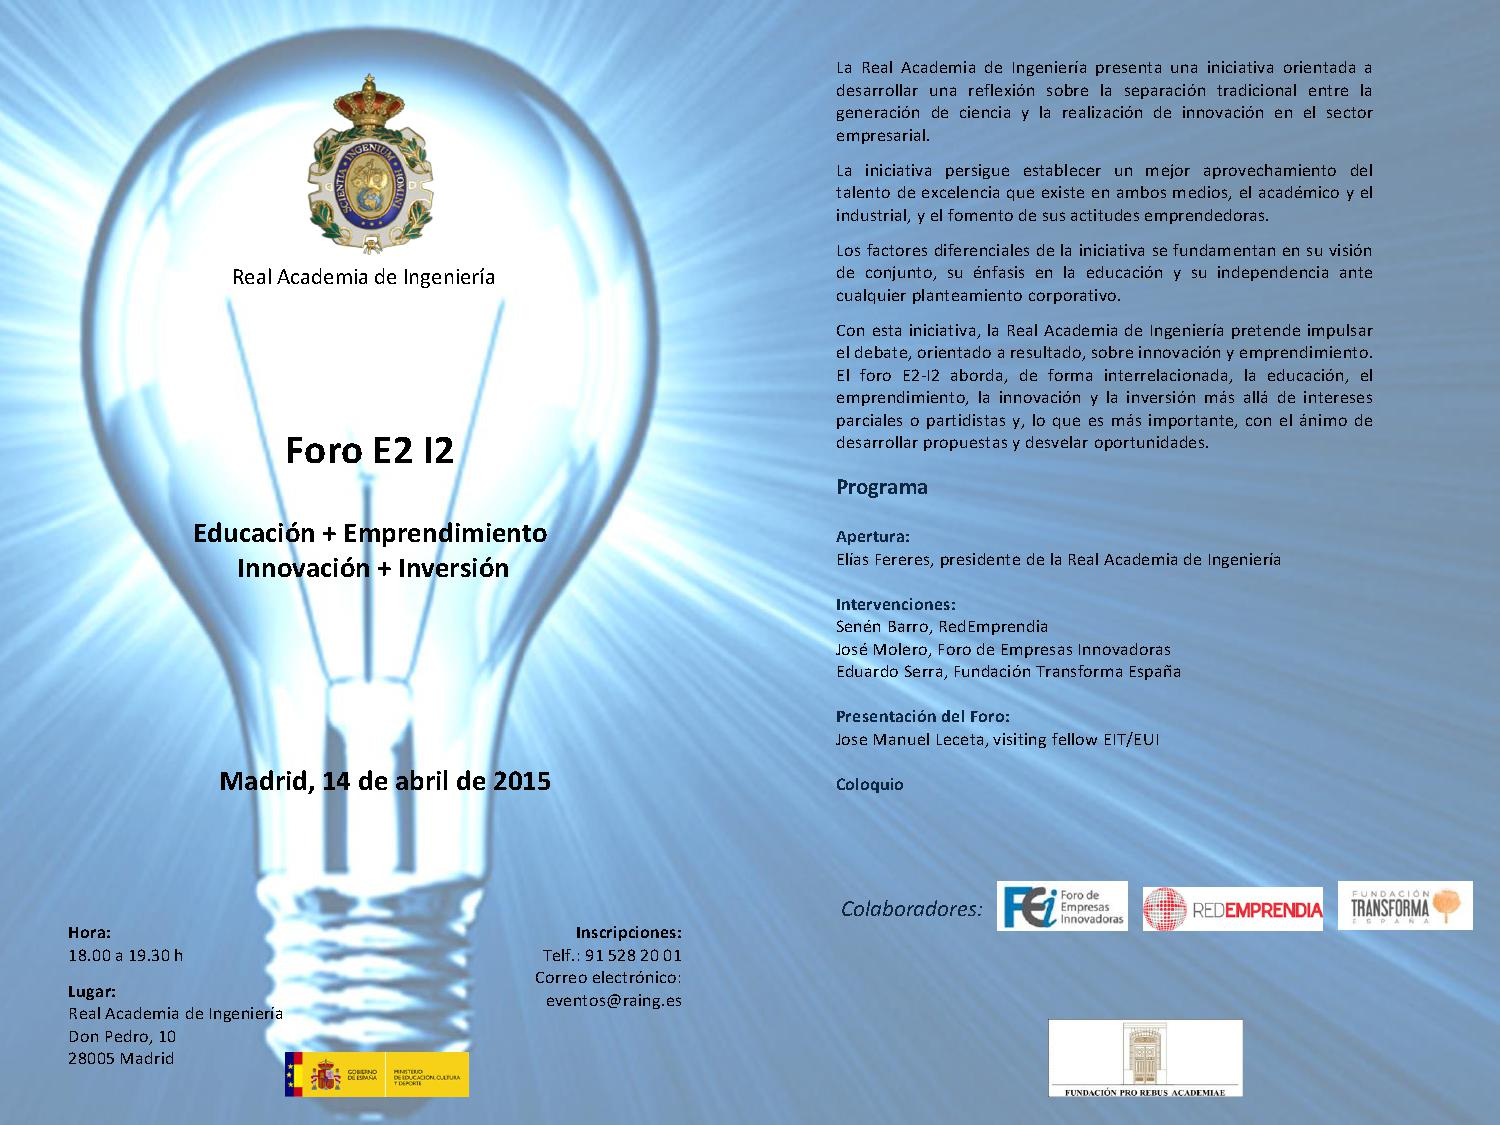 E2 I2 Forum - Education + Entrepreneurship + Innovation + Investment